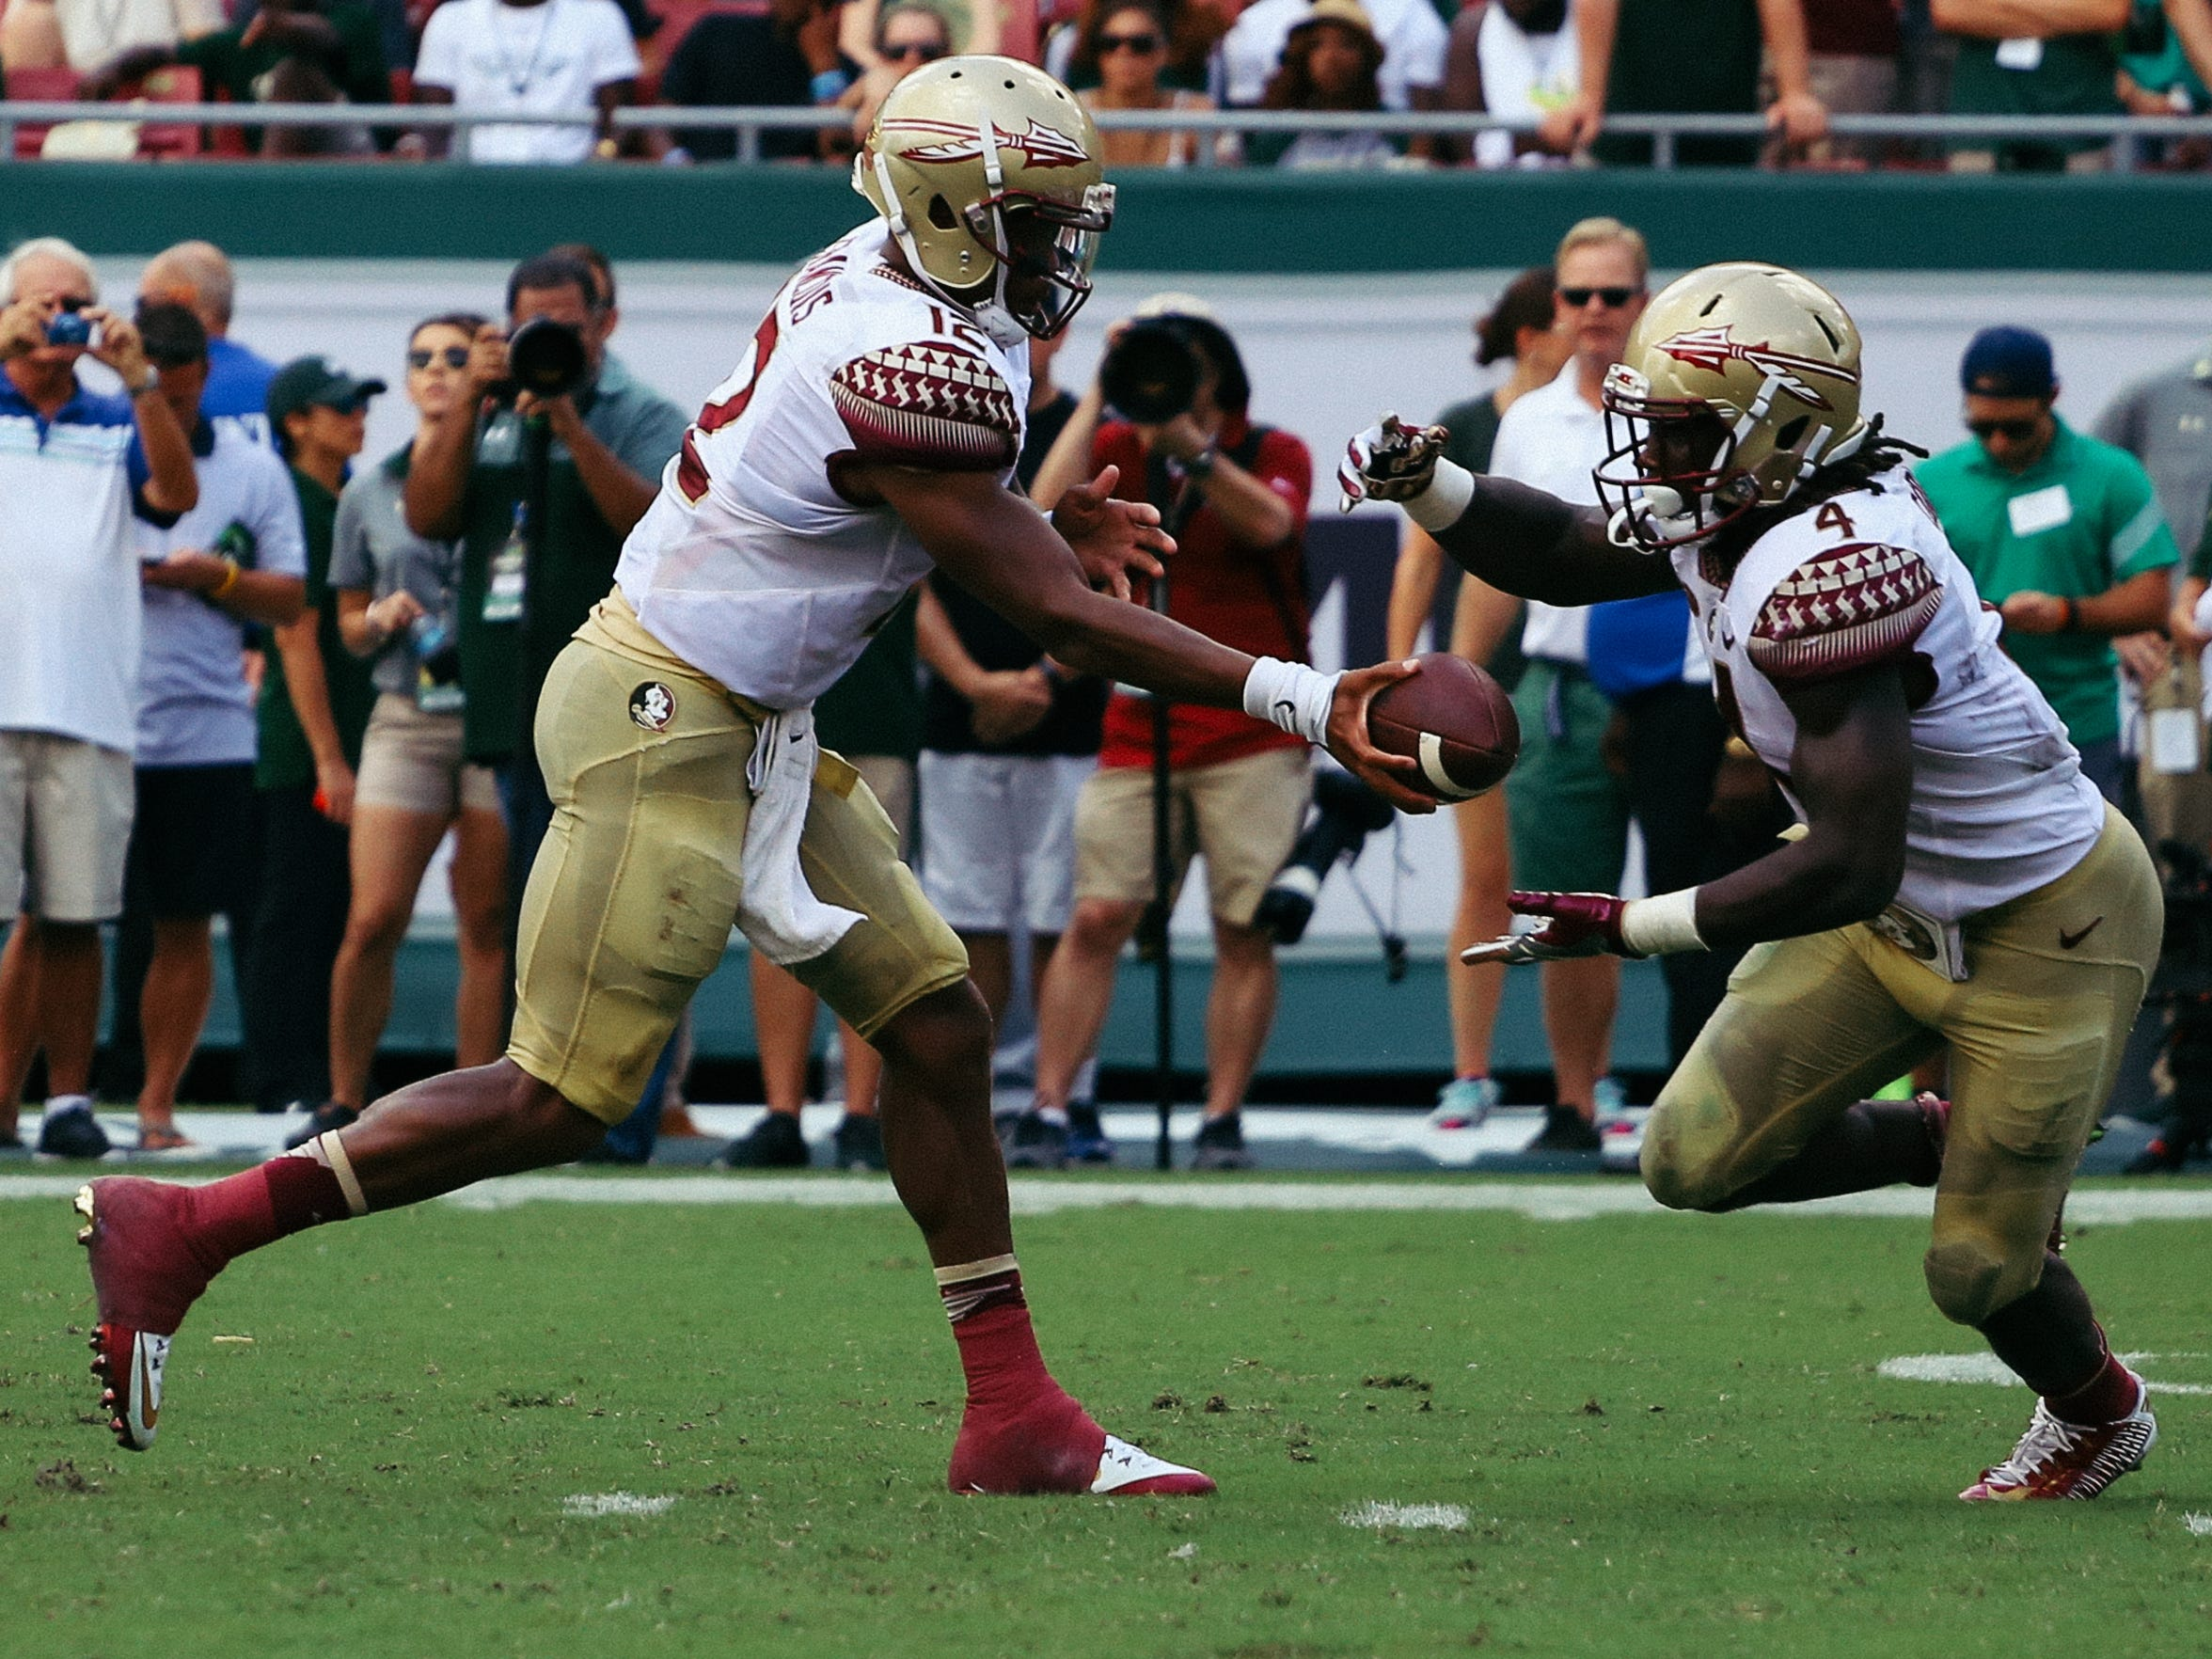 Deondre Francois (12) hands the ball off to Dalvin Cook (4) during the first half against USF at Raymond James Stadium. Cook added four catches for 64 yards in the contest.